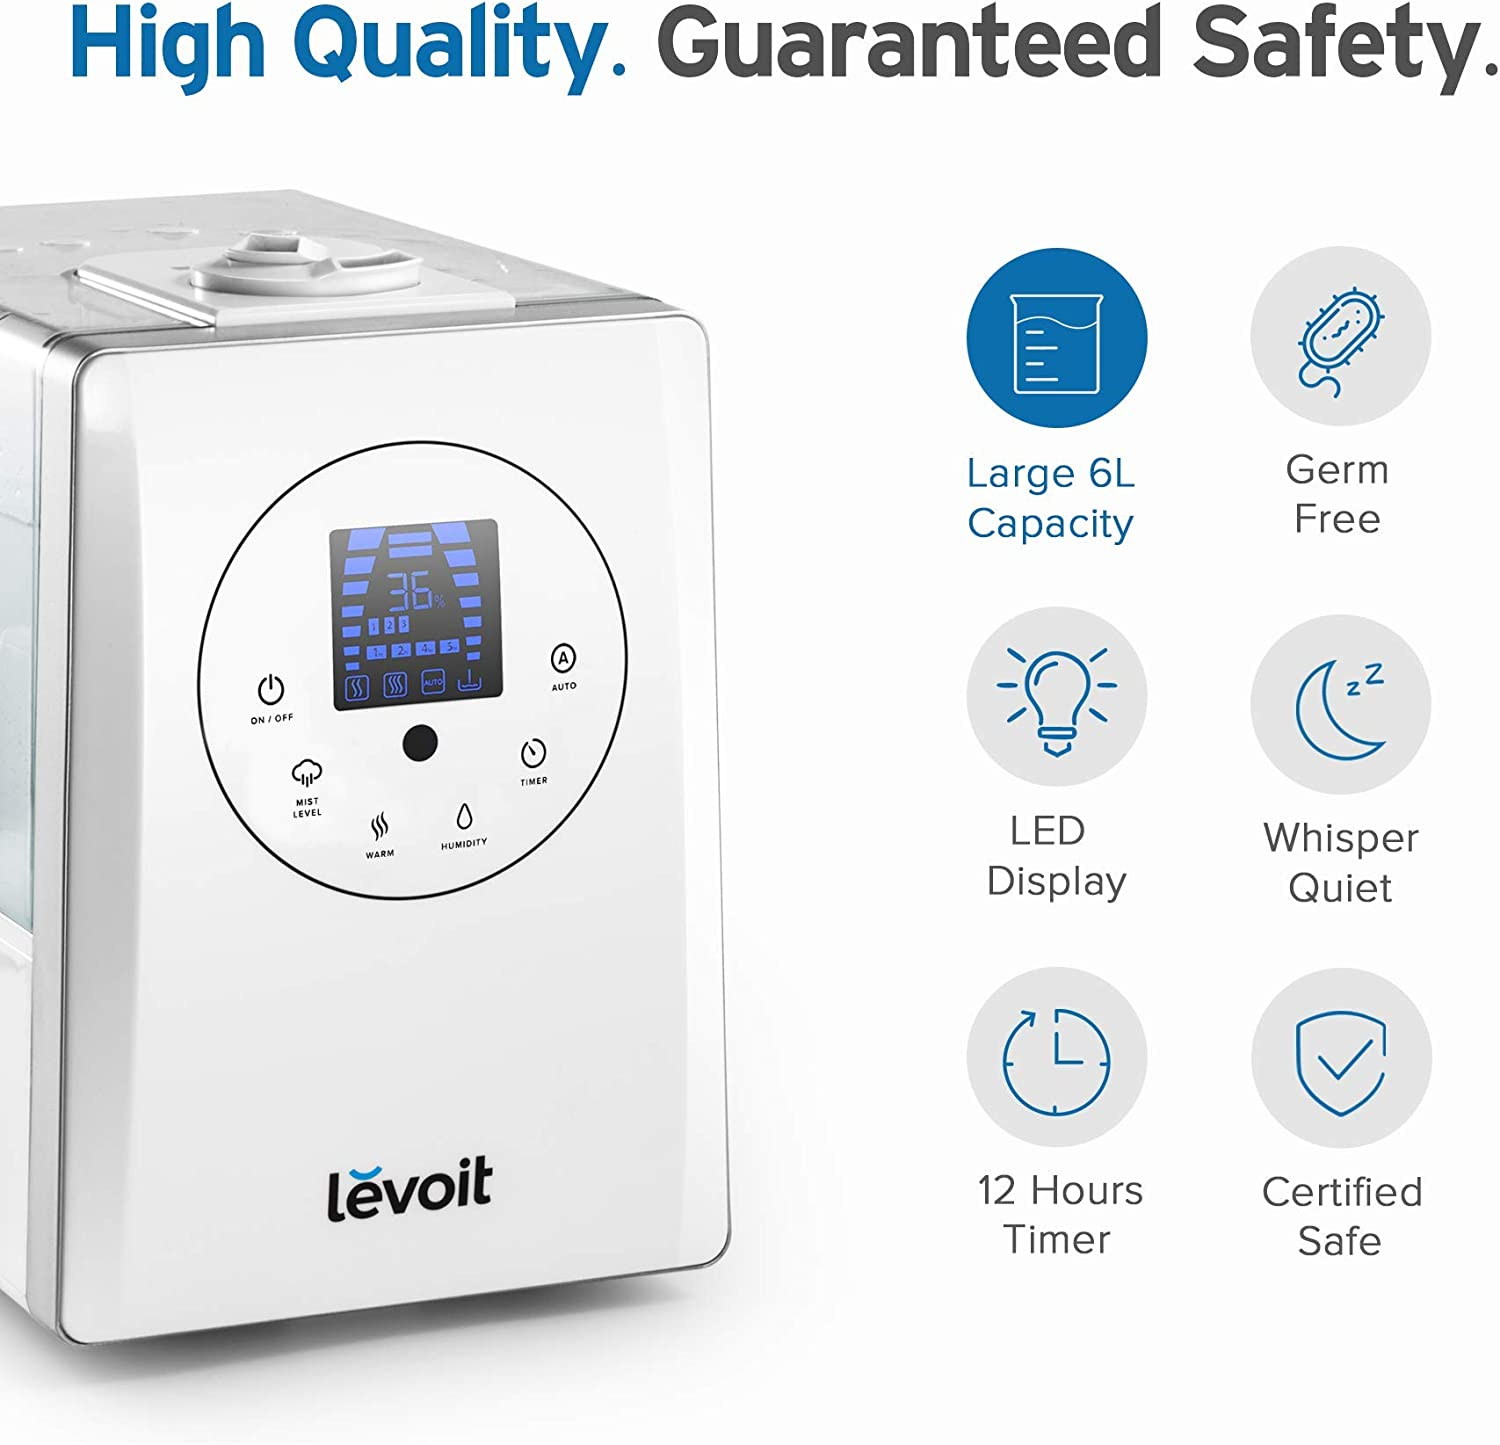 6L Warm and Cool Mist Ultrasonic Humidifier for Bedroom and Babies with Remote and Humidity Monitor Vaporizer for Large Room Renewed LEVOIT Humidifiers 2-year Warranty Germ Free and Quiet Home